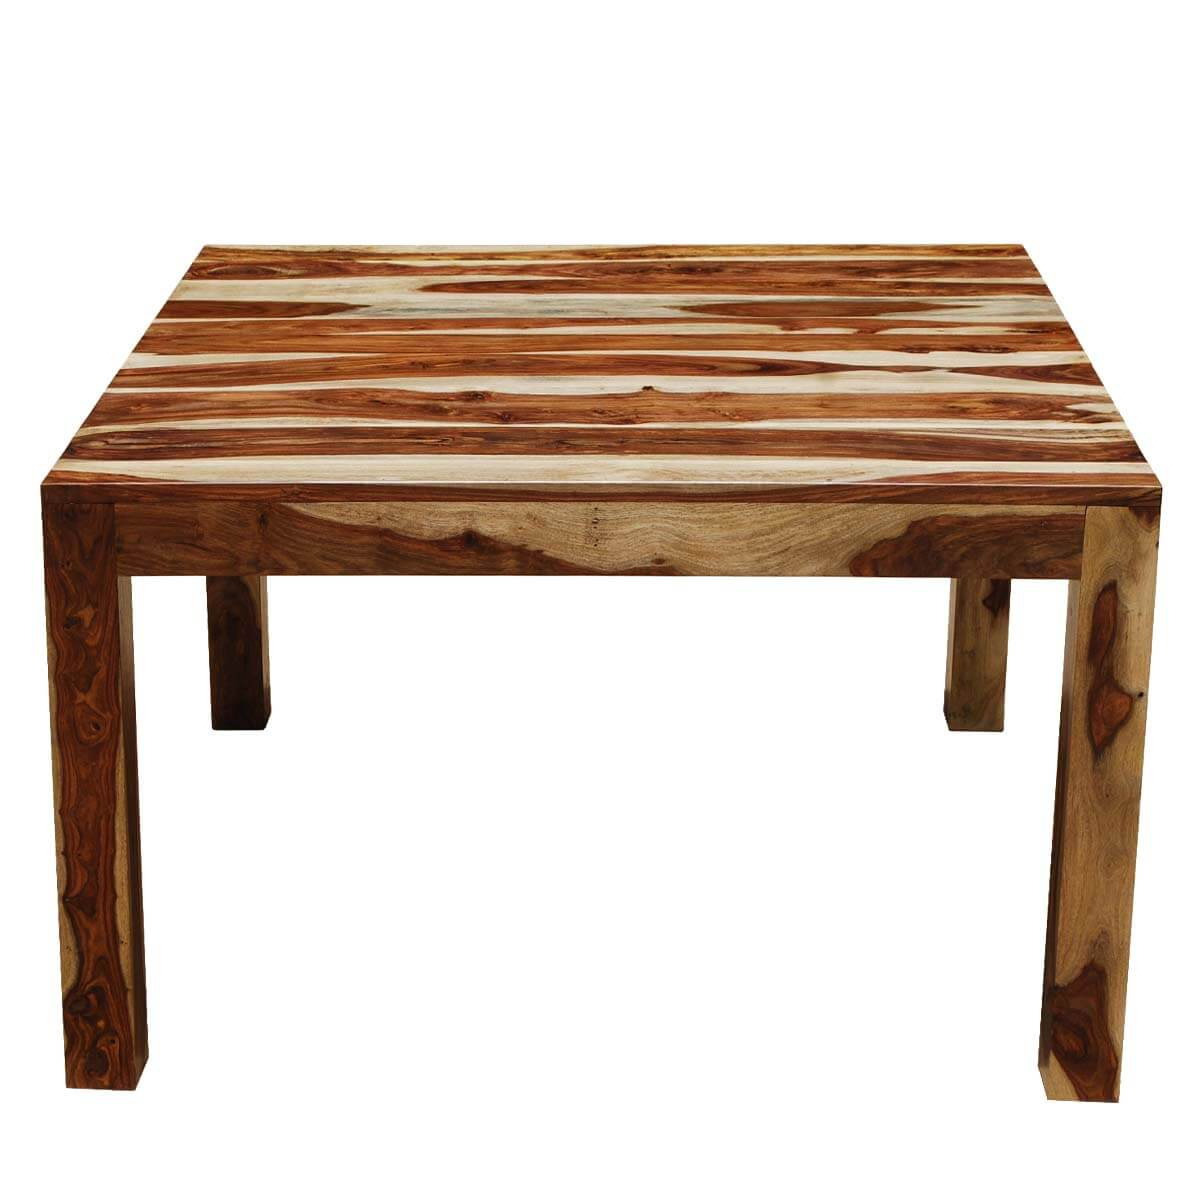 Counter Height Dining Table For 8: Kluane Solid Wood Counter Height Square Dining Table For 8